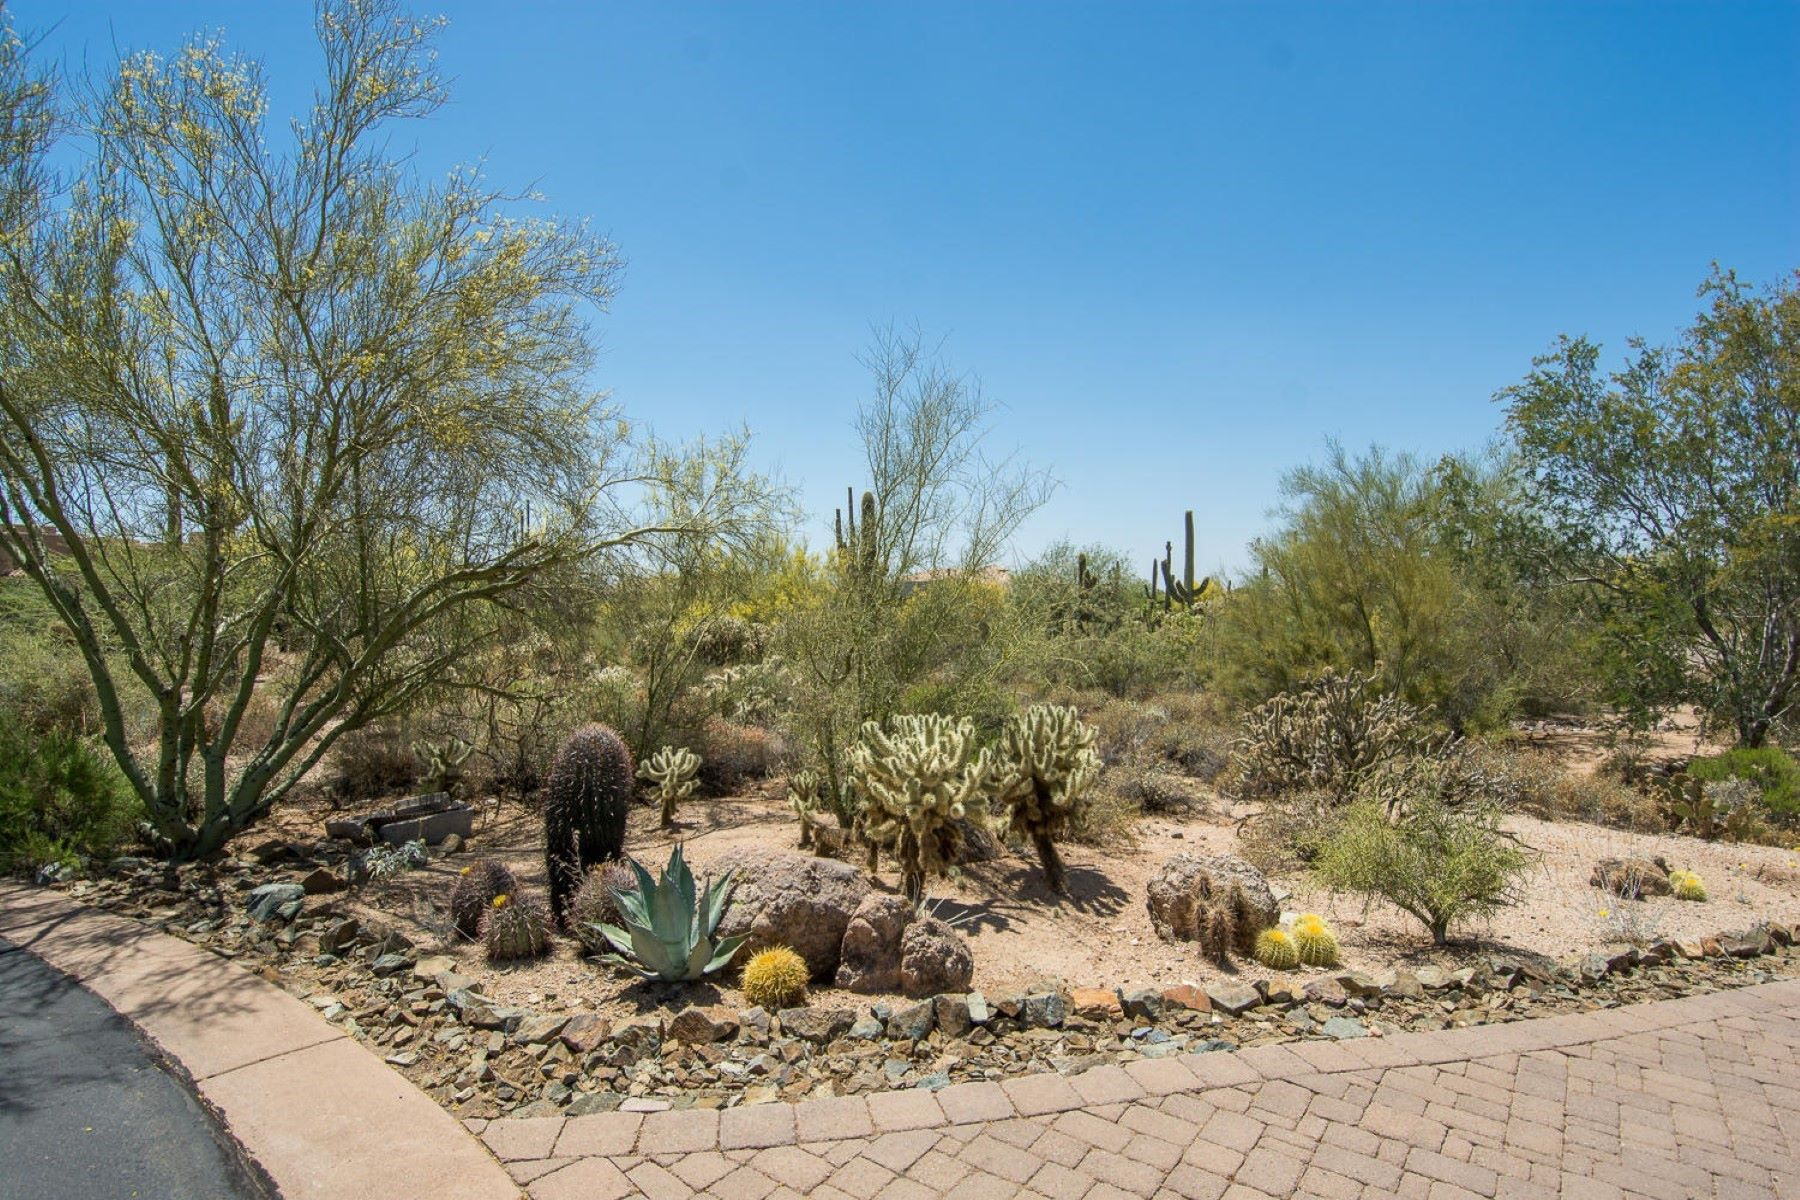 Terreno por un Venta en Desirable Sincuidados Guard Gated North Scottsdale Community 8300 E DIXILETA DR 279, Scottsdale, Arizona, 85266 Estados Unidos